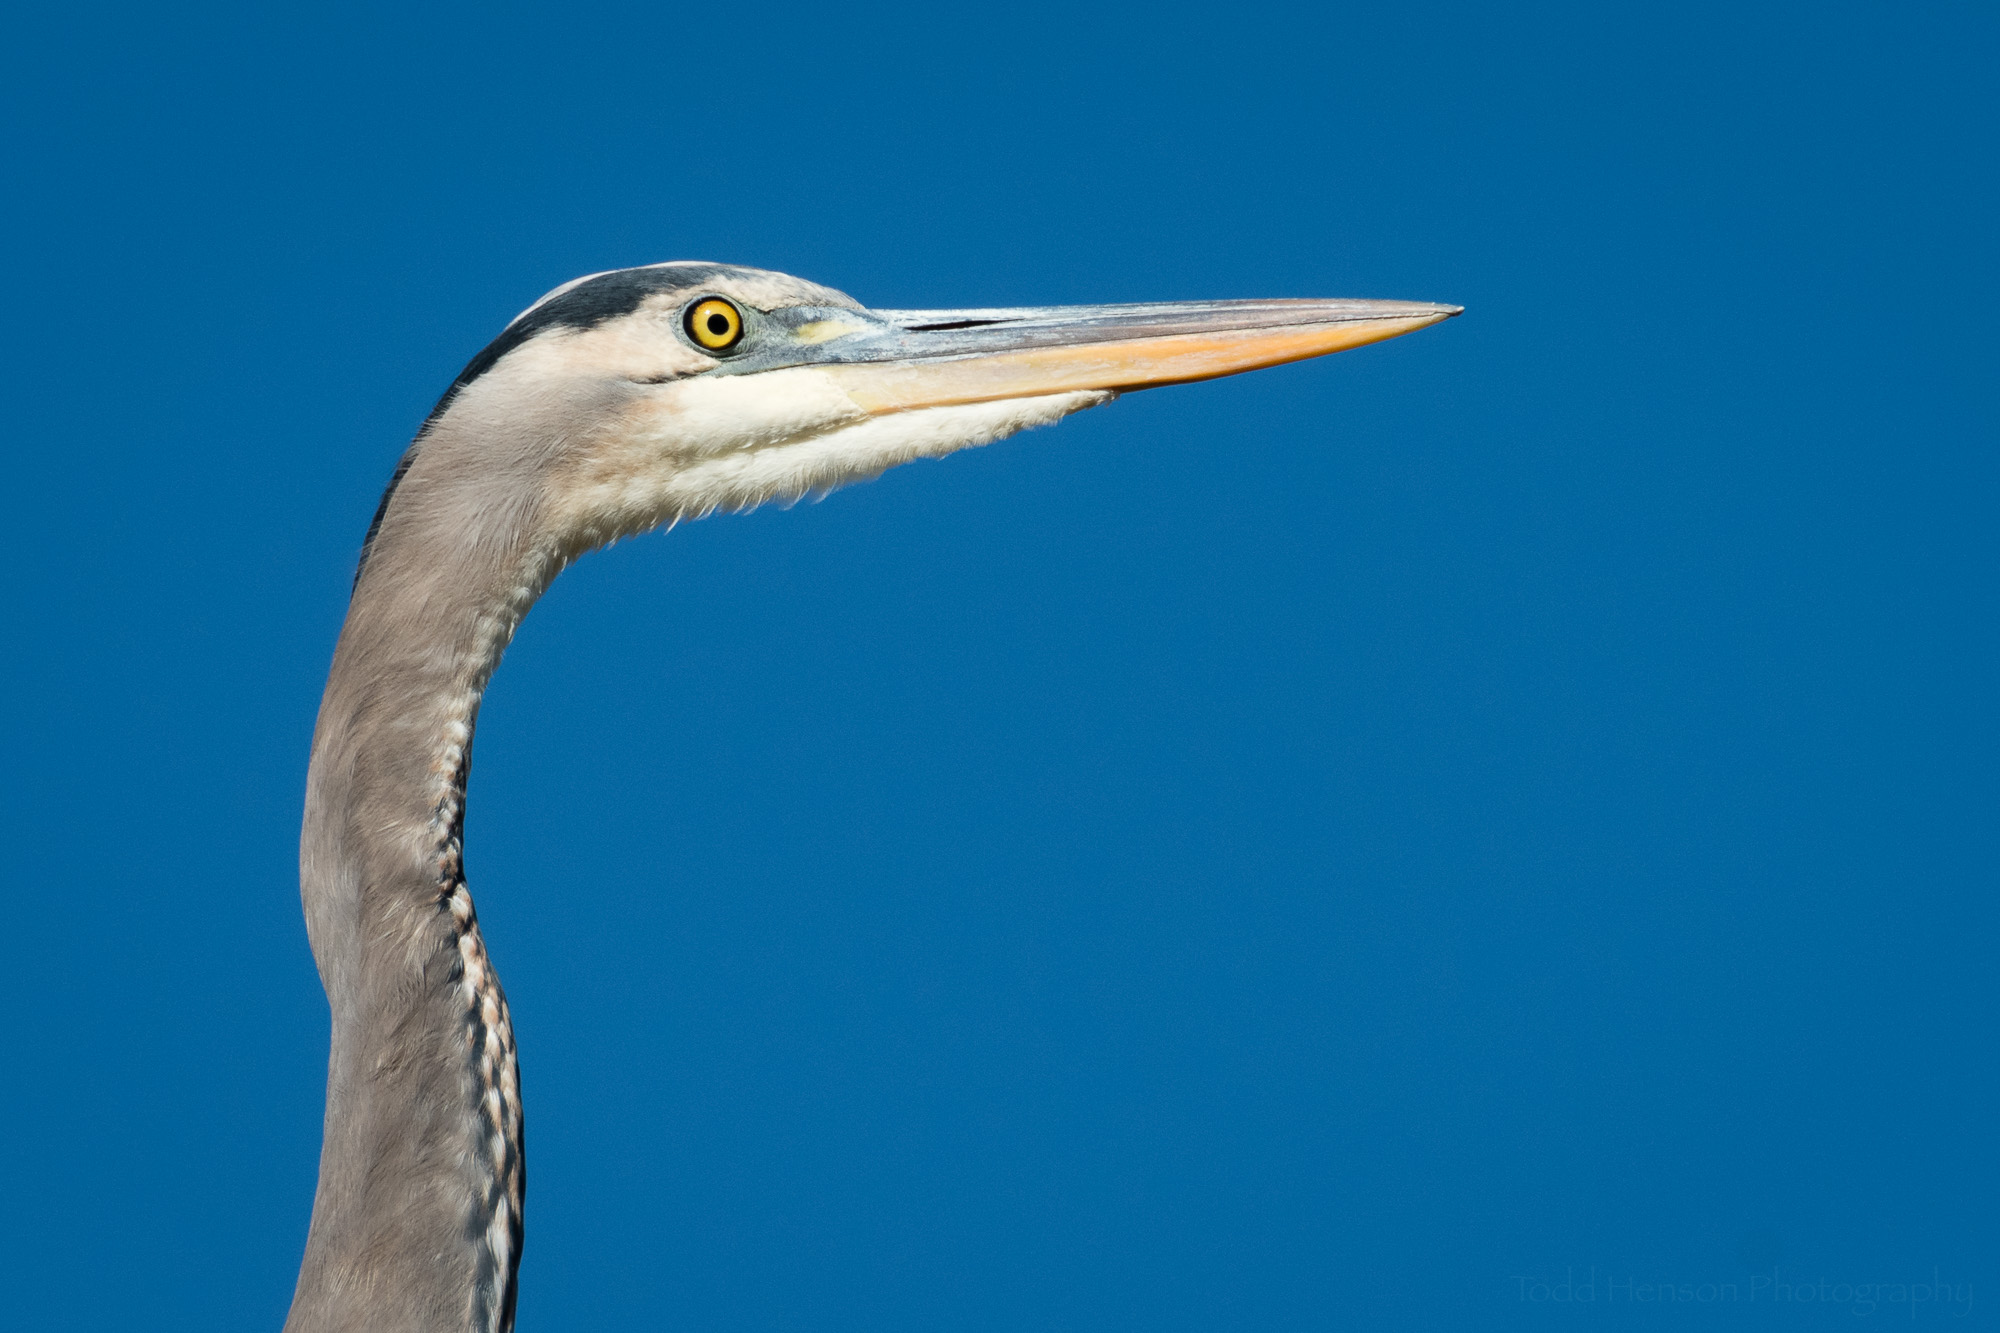 Closeup of the Great Blue Heron's head as it watches the nearby wetlands.